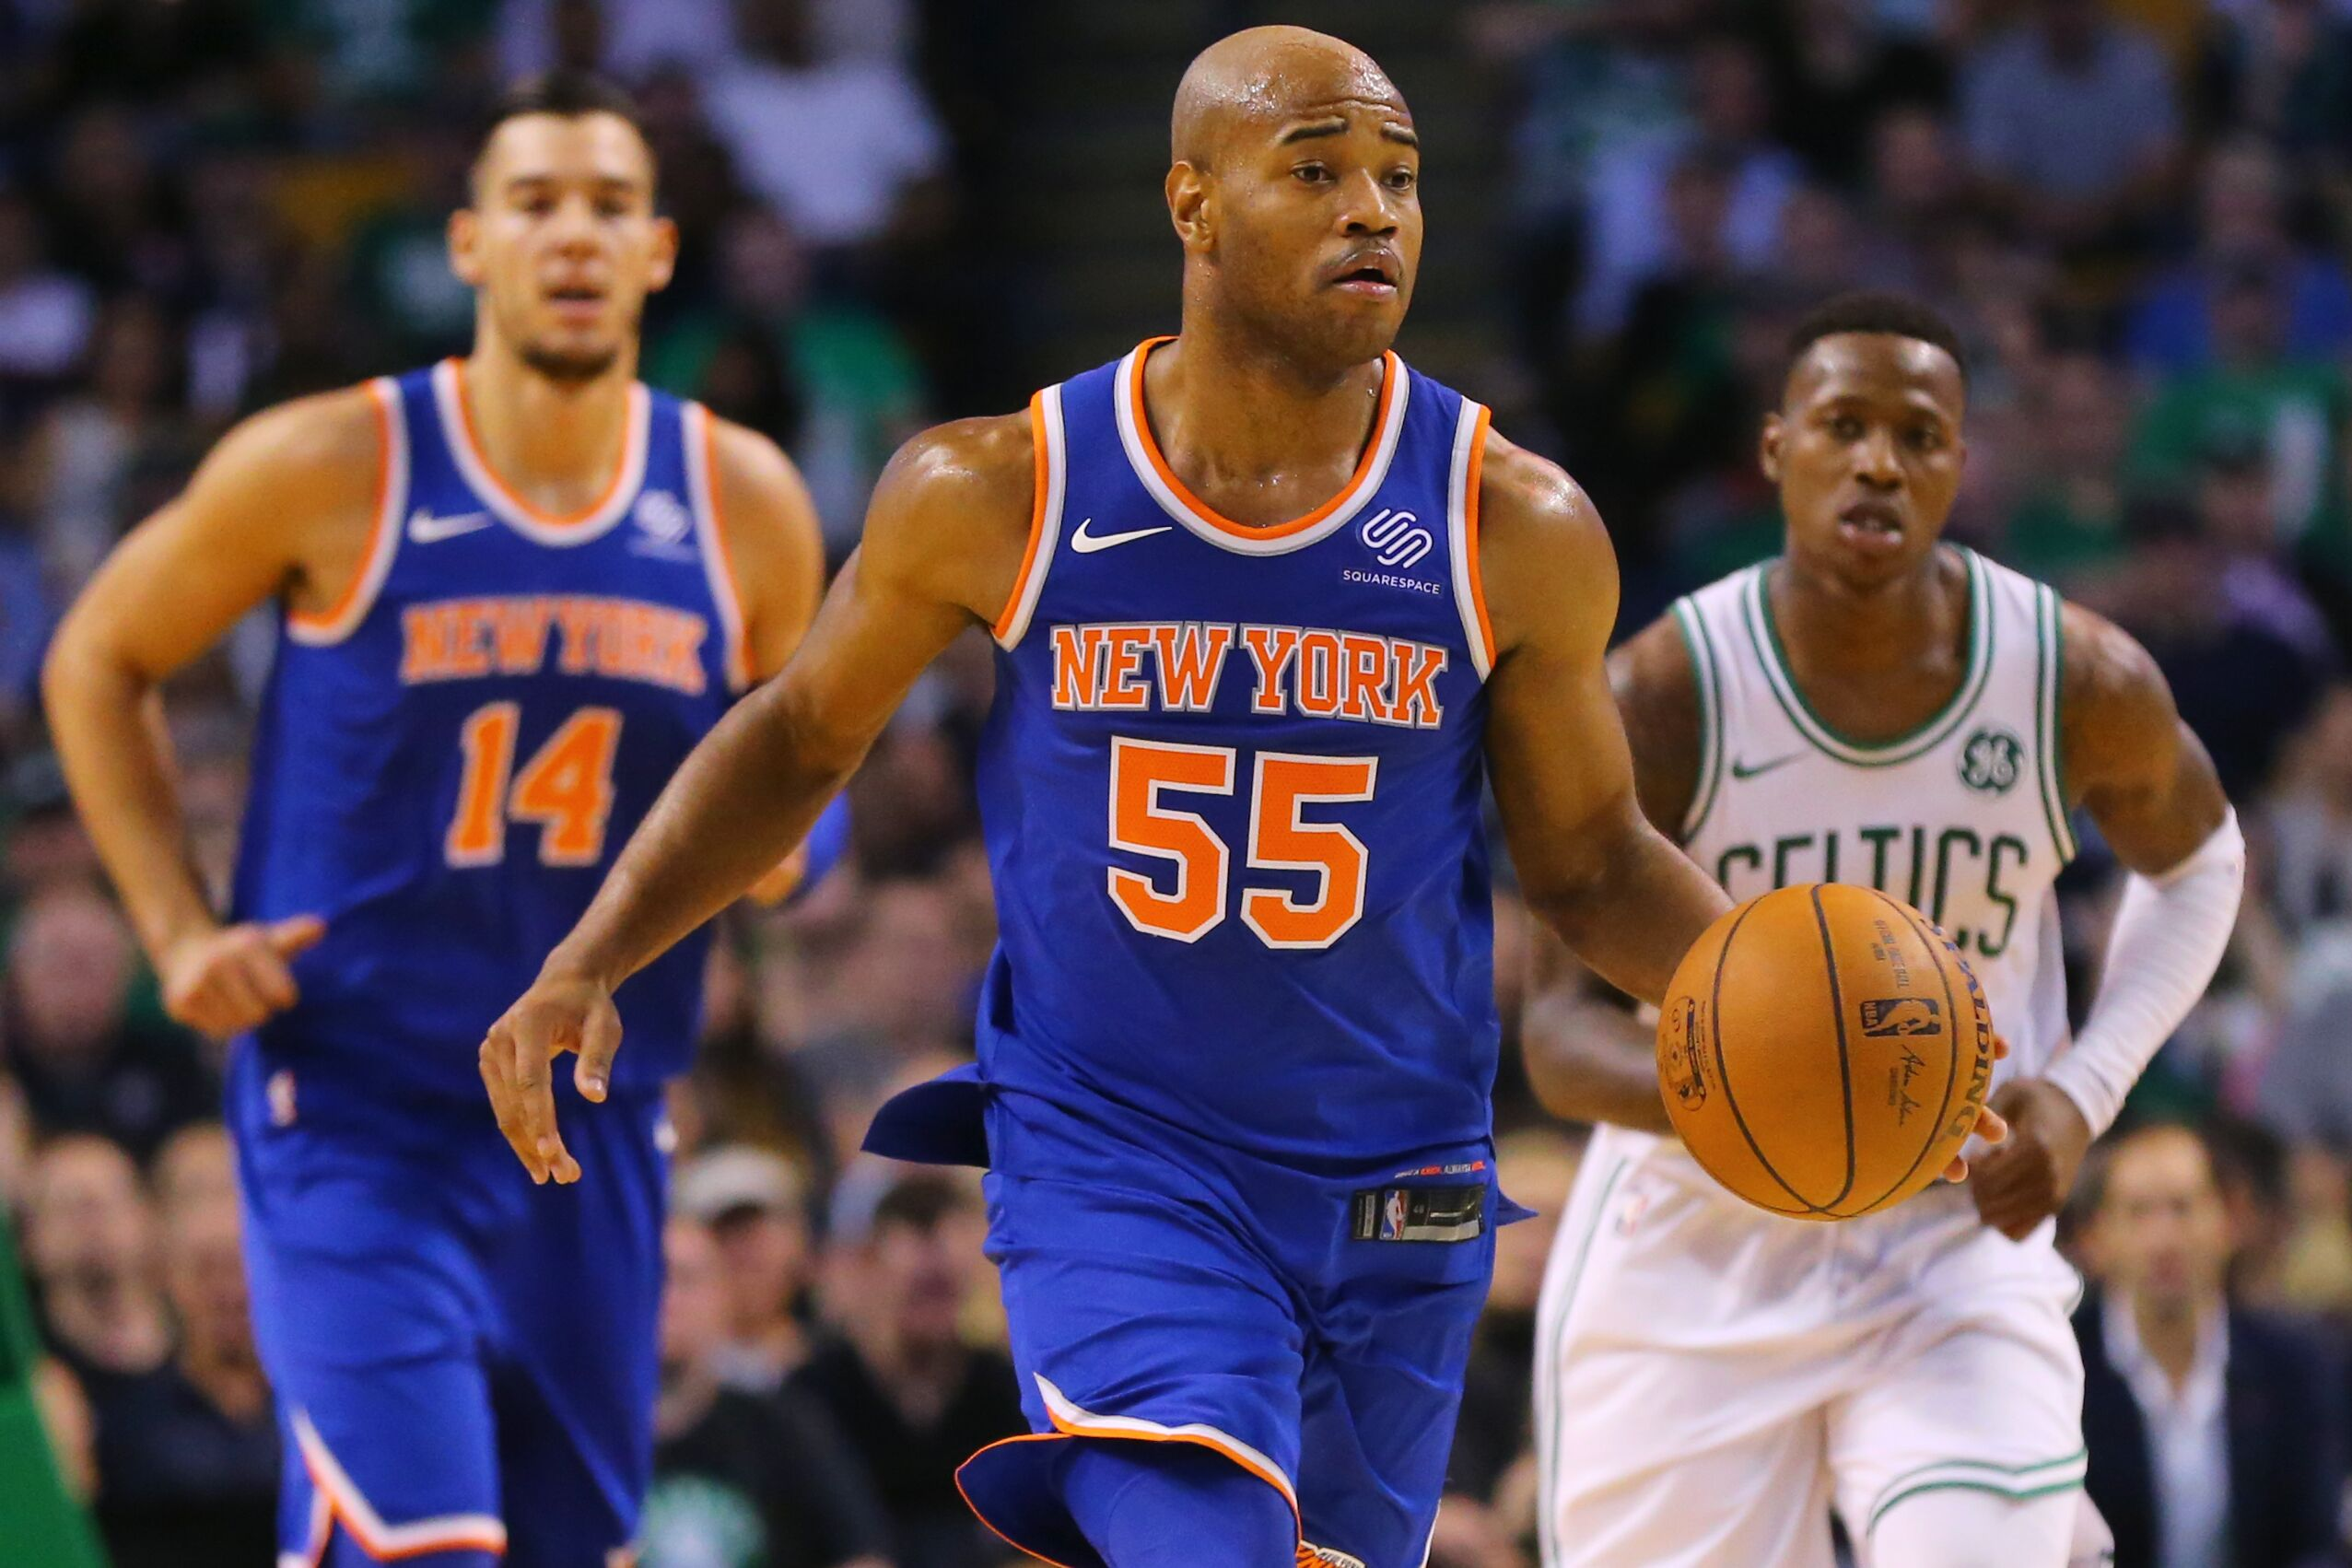 866032698-new-york-knicks-v-boston-celtics.jpg